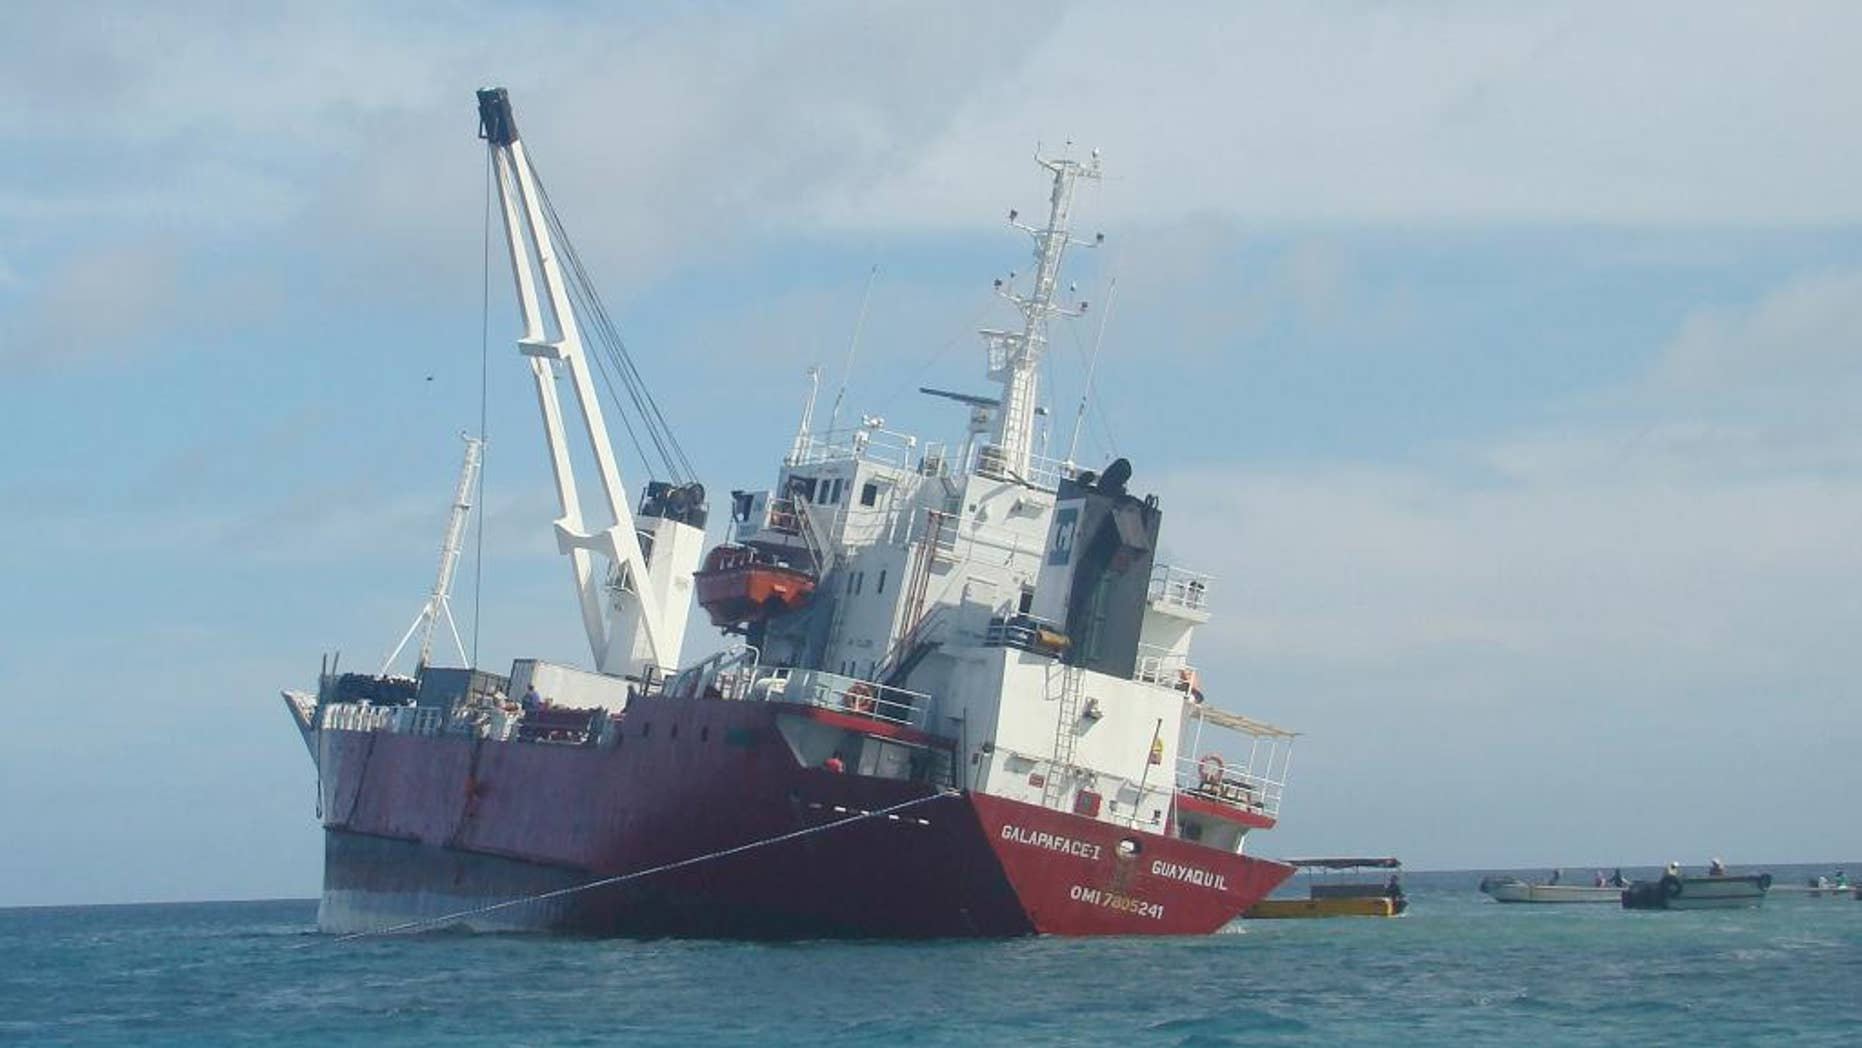 This Friday, May 9, 2014 photo, released by Galapagos National Park, shows the freighter Galapaface I that ran aground in the bay adjacent to San Cristobal island, in the Galapagos Islands. Ecuadorean authorities said Friday, May 16, 2014, they have offloaded all the fuel and most of the cargo from the freighter, and it will take three to four weeks to refloat and rescue the ship. (AP Photo/Galapagos National Park)